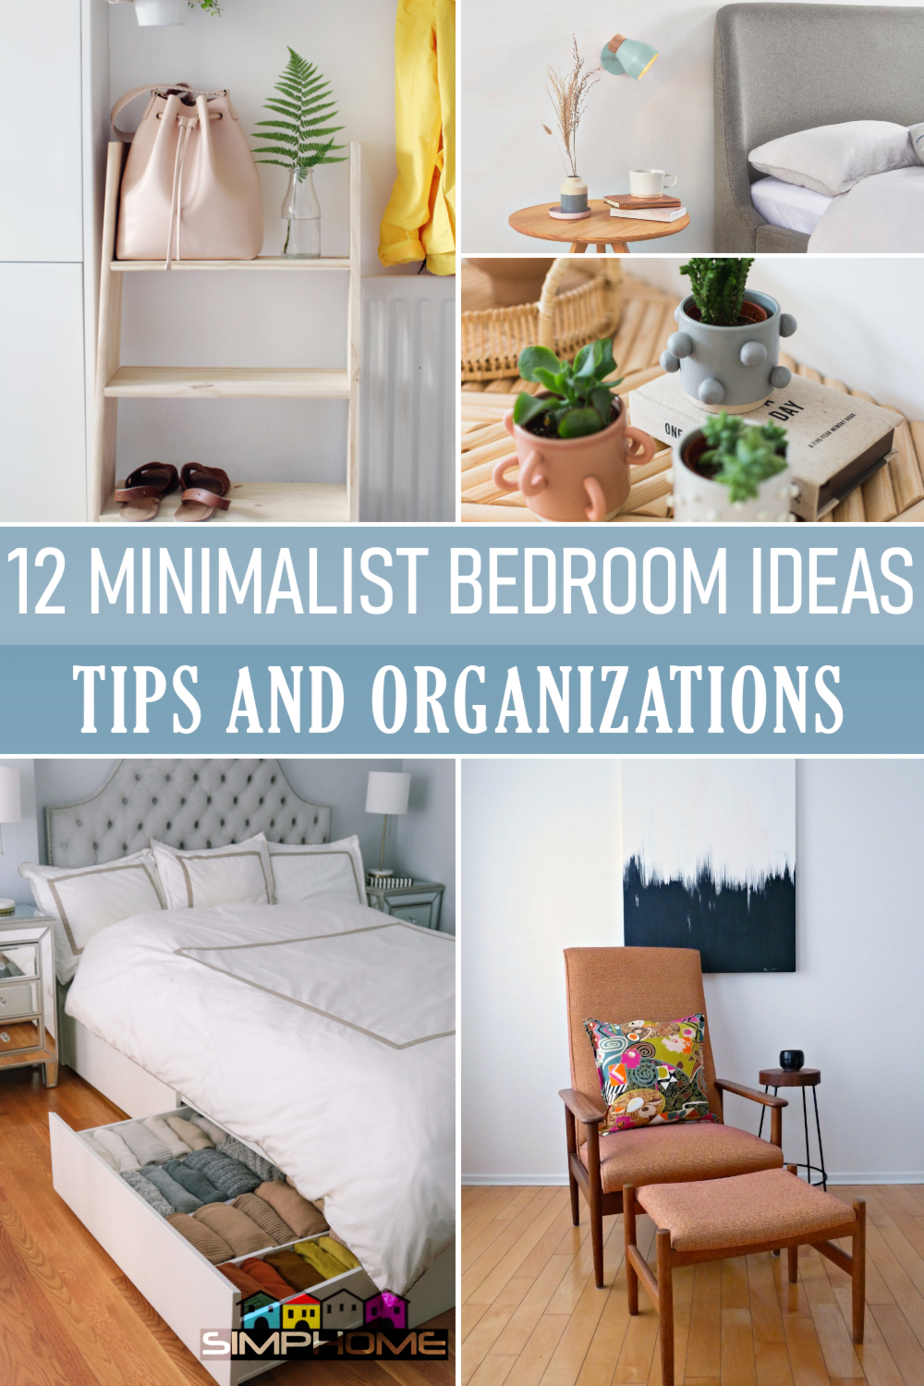 12 Minimalist Bedroom Organization Tips via Simphome.comFeatured Image